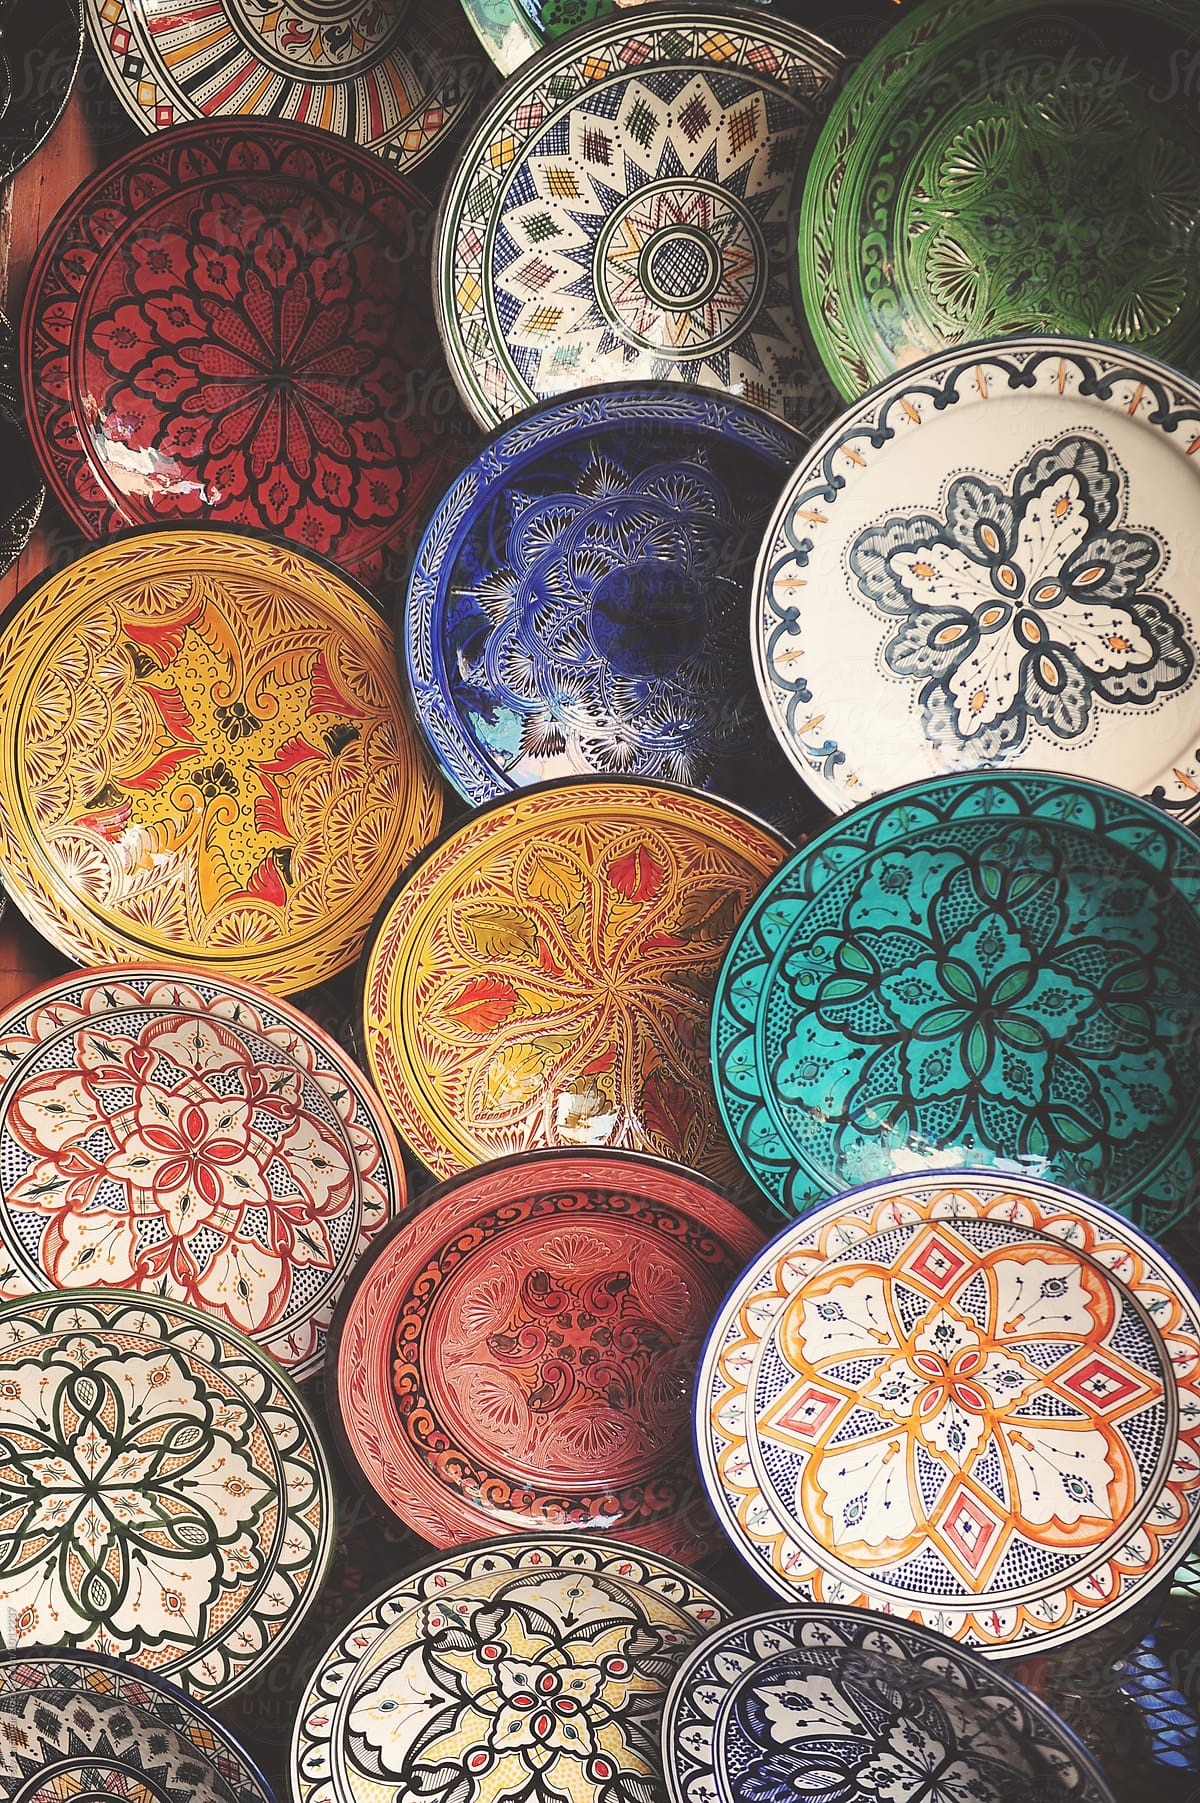 Plates For Sale >> Hand Painted Plates For Sale In A Bazaar In Morocco By